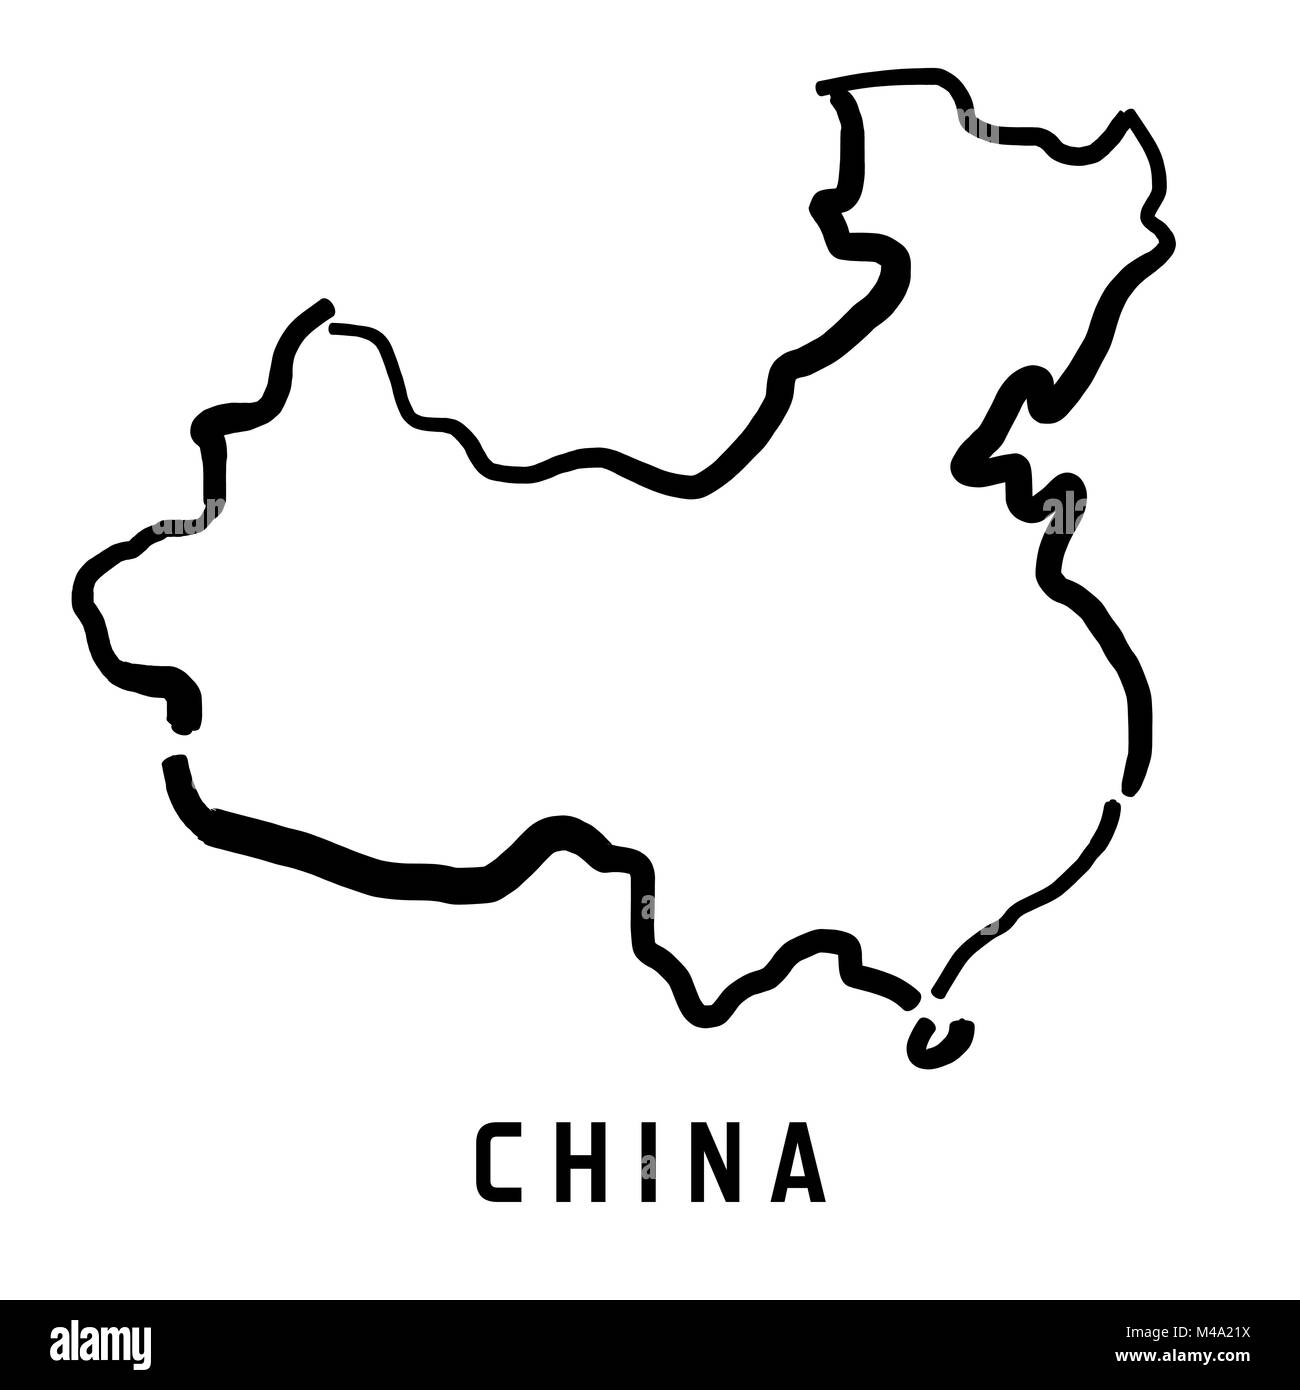 China Simple Map Outline